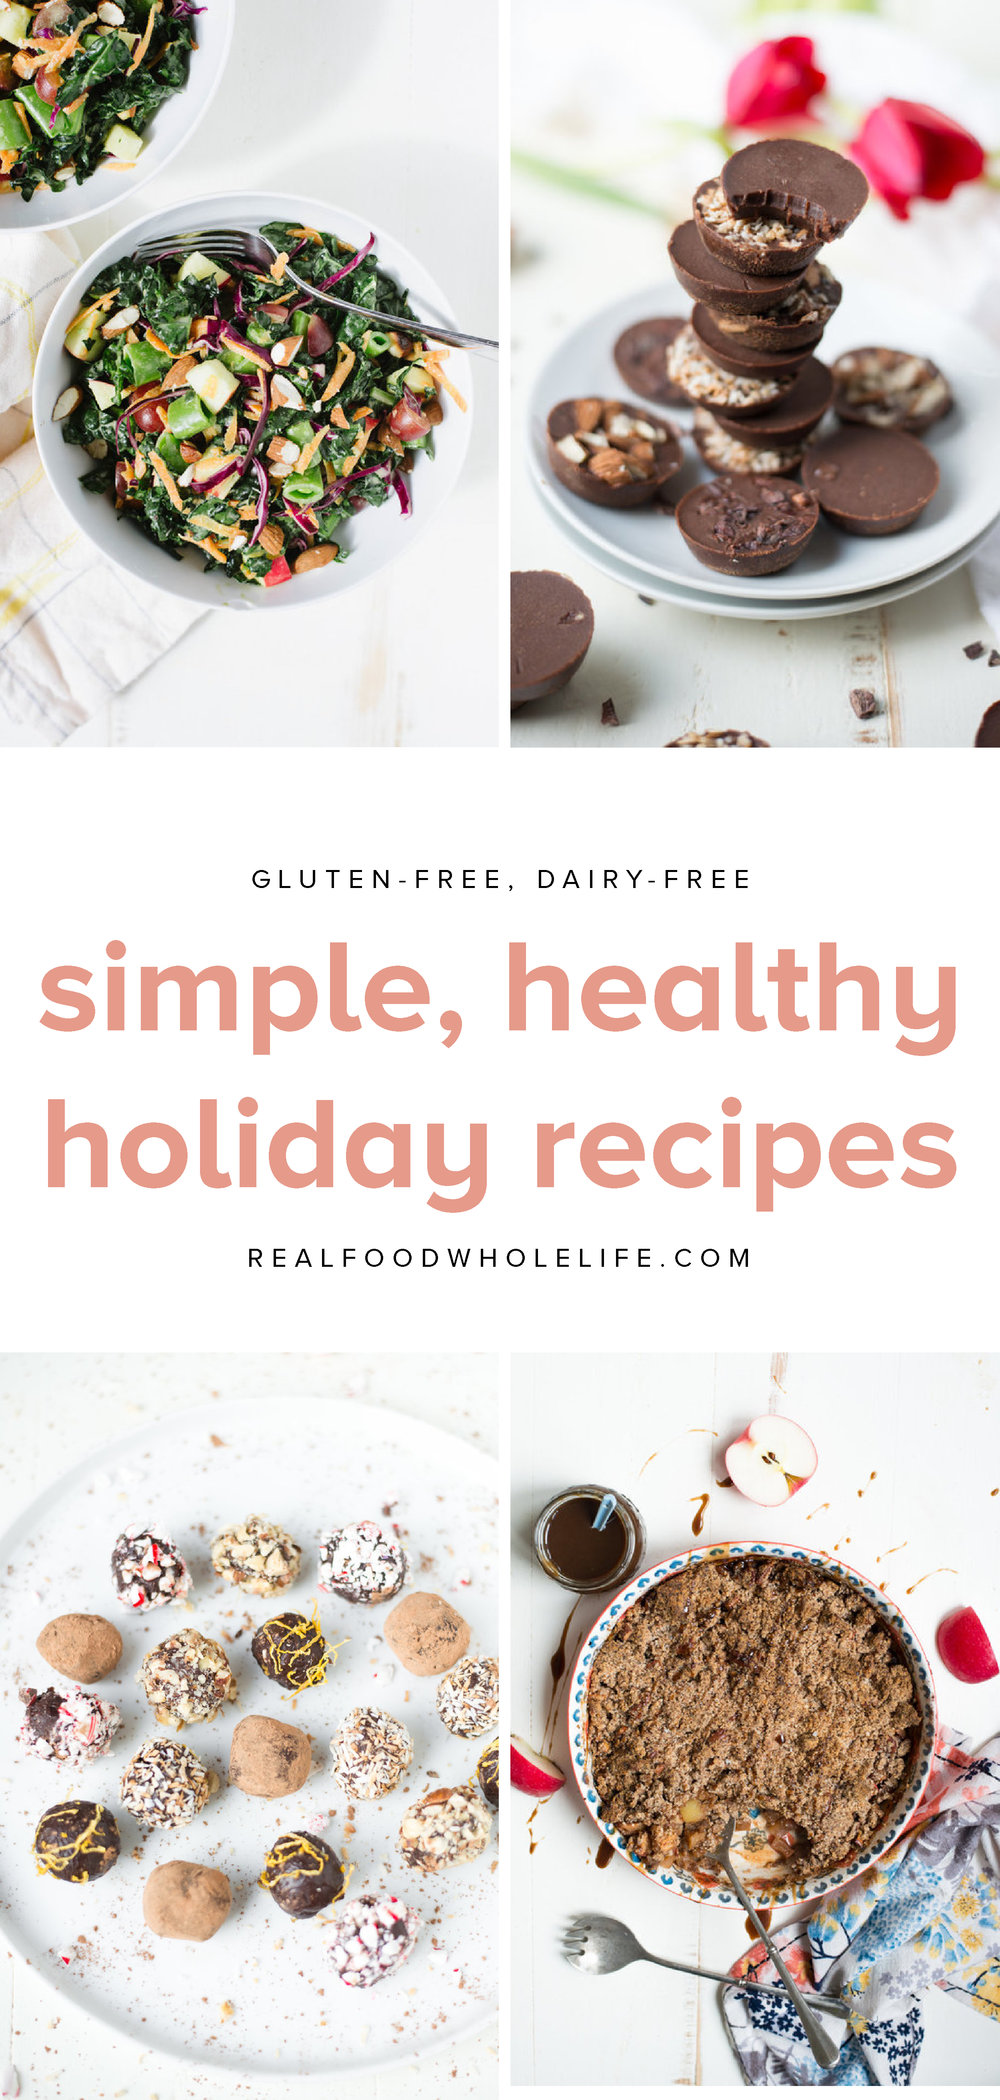 21 gluten-free, dairy-free, refined sugar-free holiday recipes perfect for Christmas. #glutenfree #dairyfree #holiday #healthyholiday #recipe #roundup #realfoodwholelife #refinedsugarfree #grainfree #christmas #winterrecipes